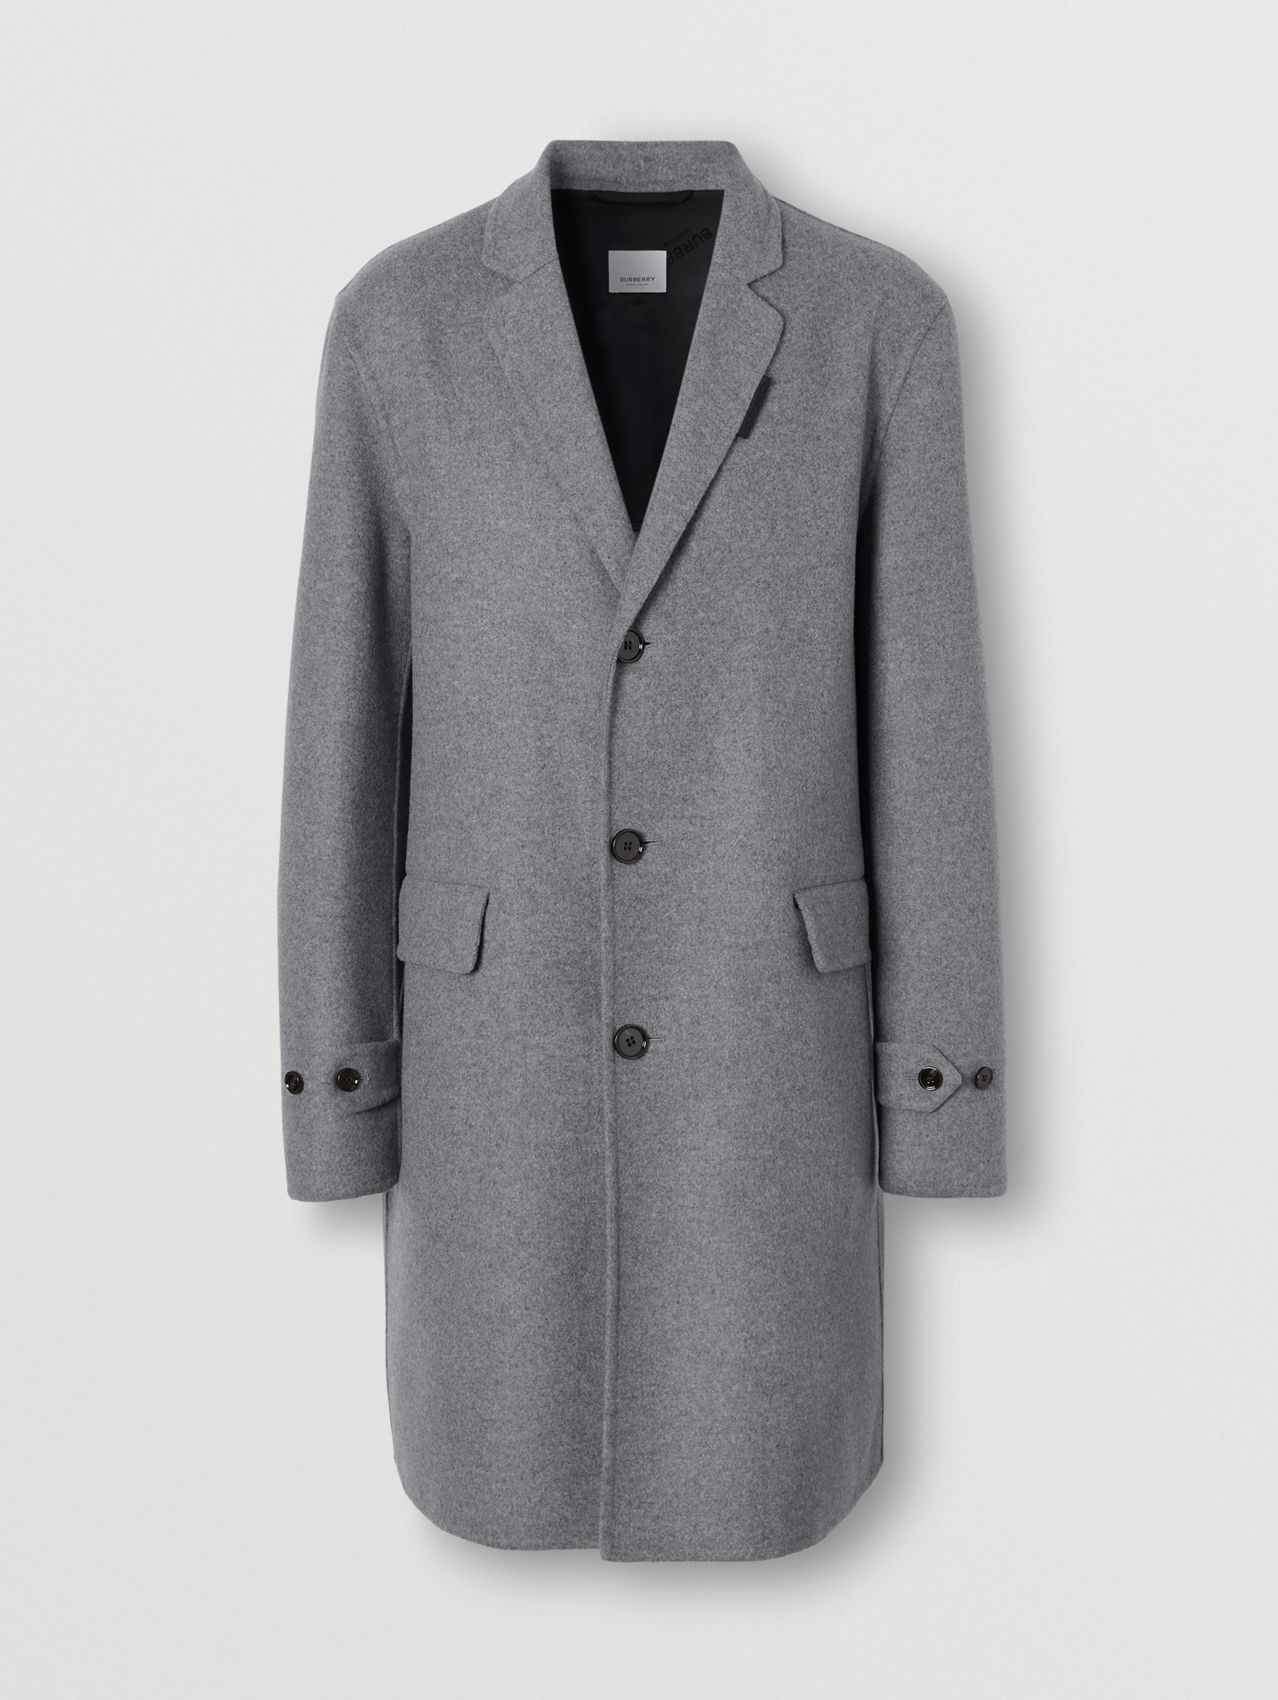 Wool Cashmere Lab Coat in Charcoal